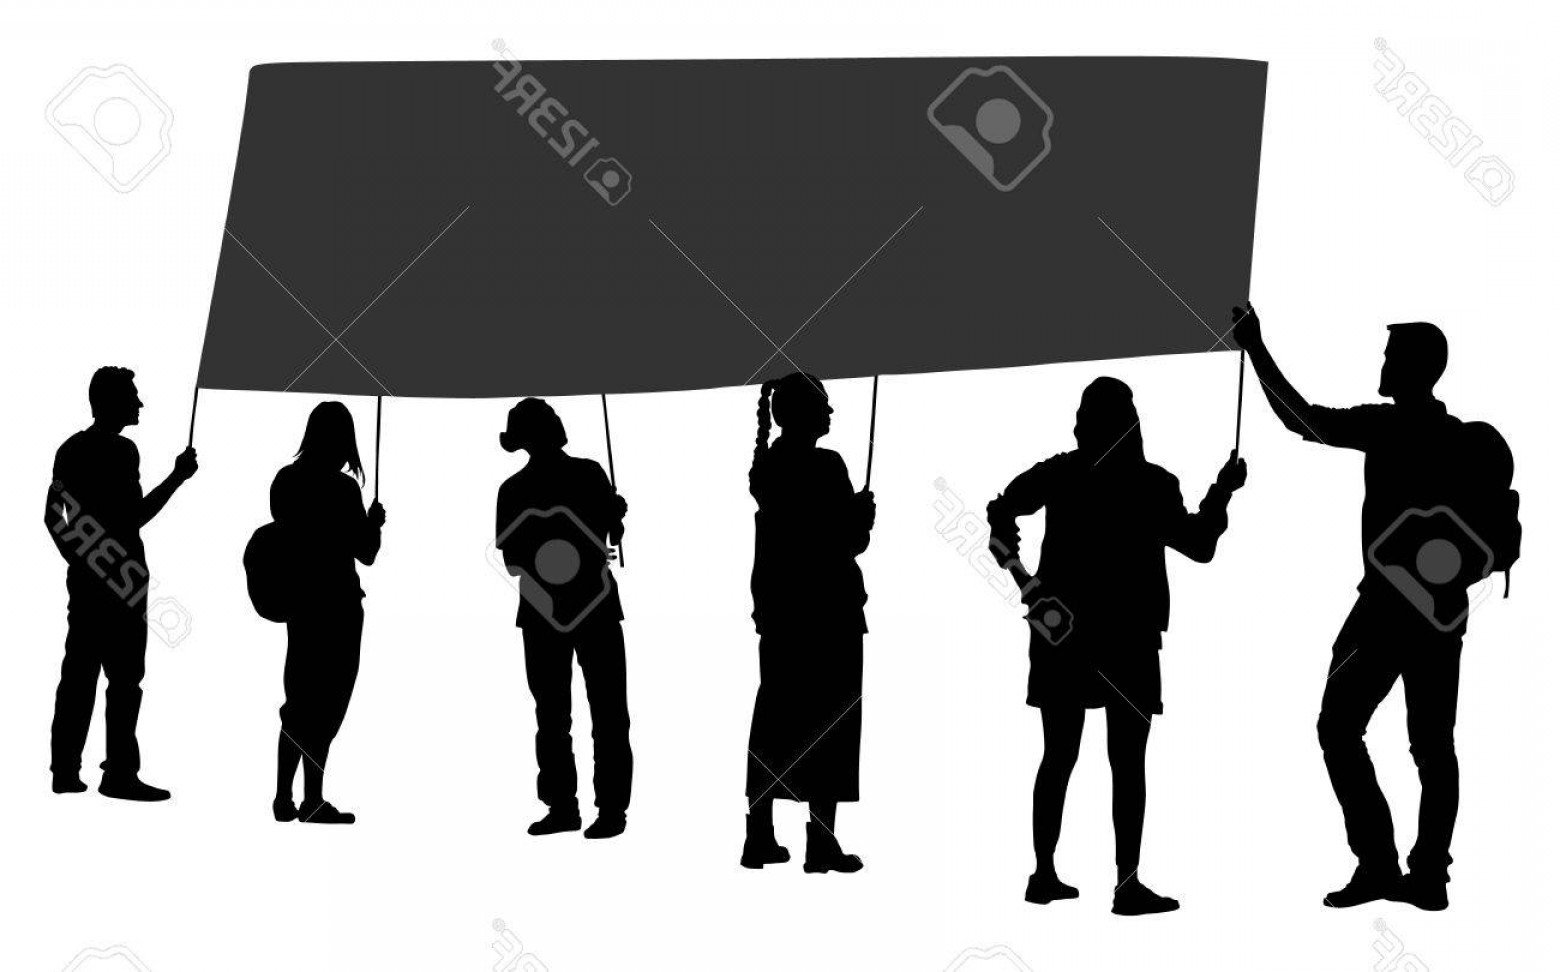 Sillouhette Vector Group: Photostock Vector Group Of Protester Vector Silhouette Illustration Hand Holding Sign Man Hand Empty Editable Plate Is